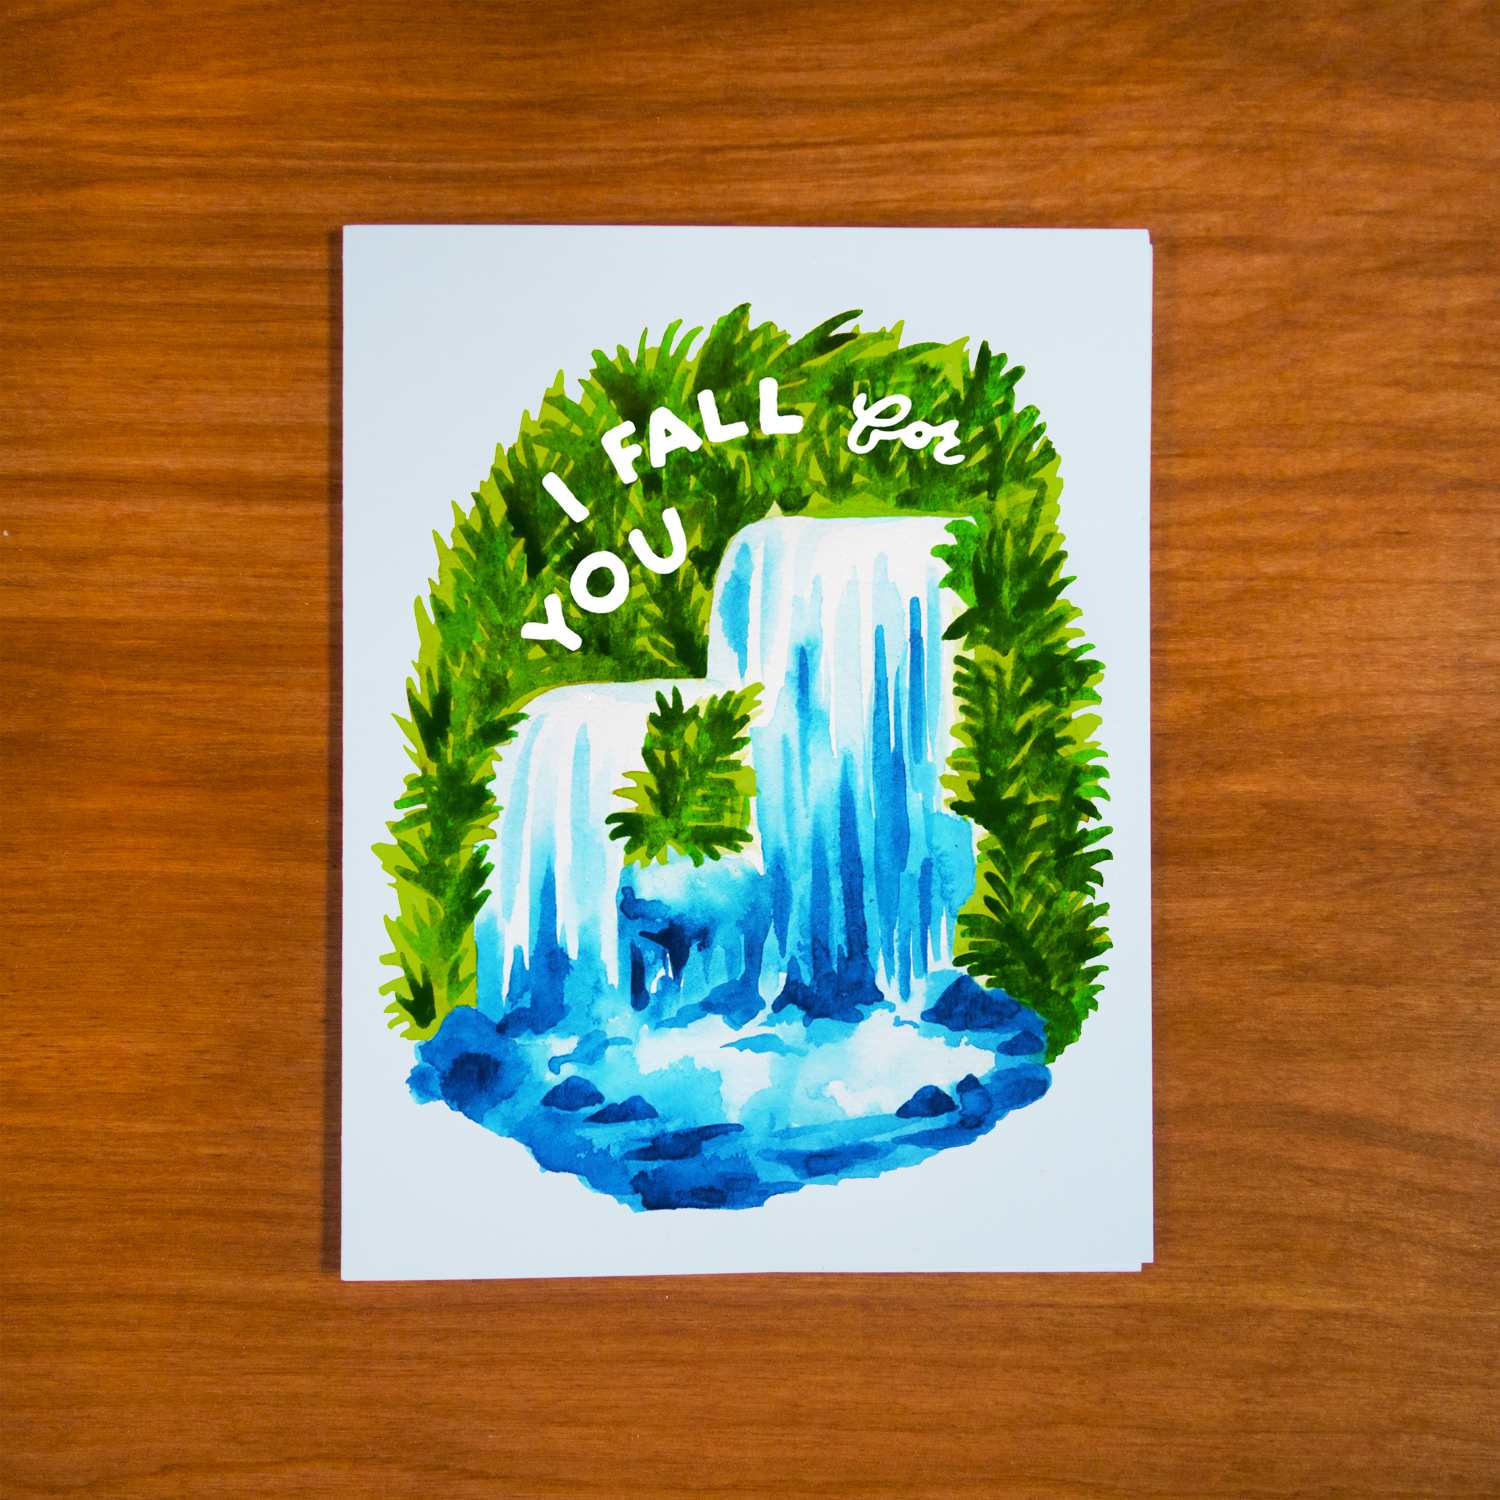 waterfall-greeting-card-on-wood-brighter.jpg